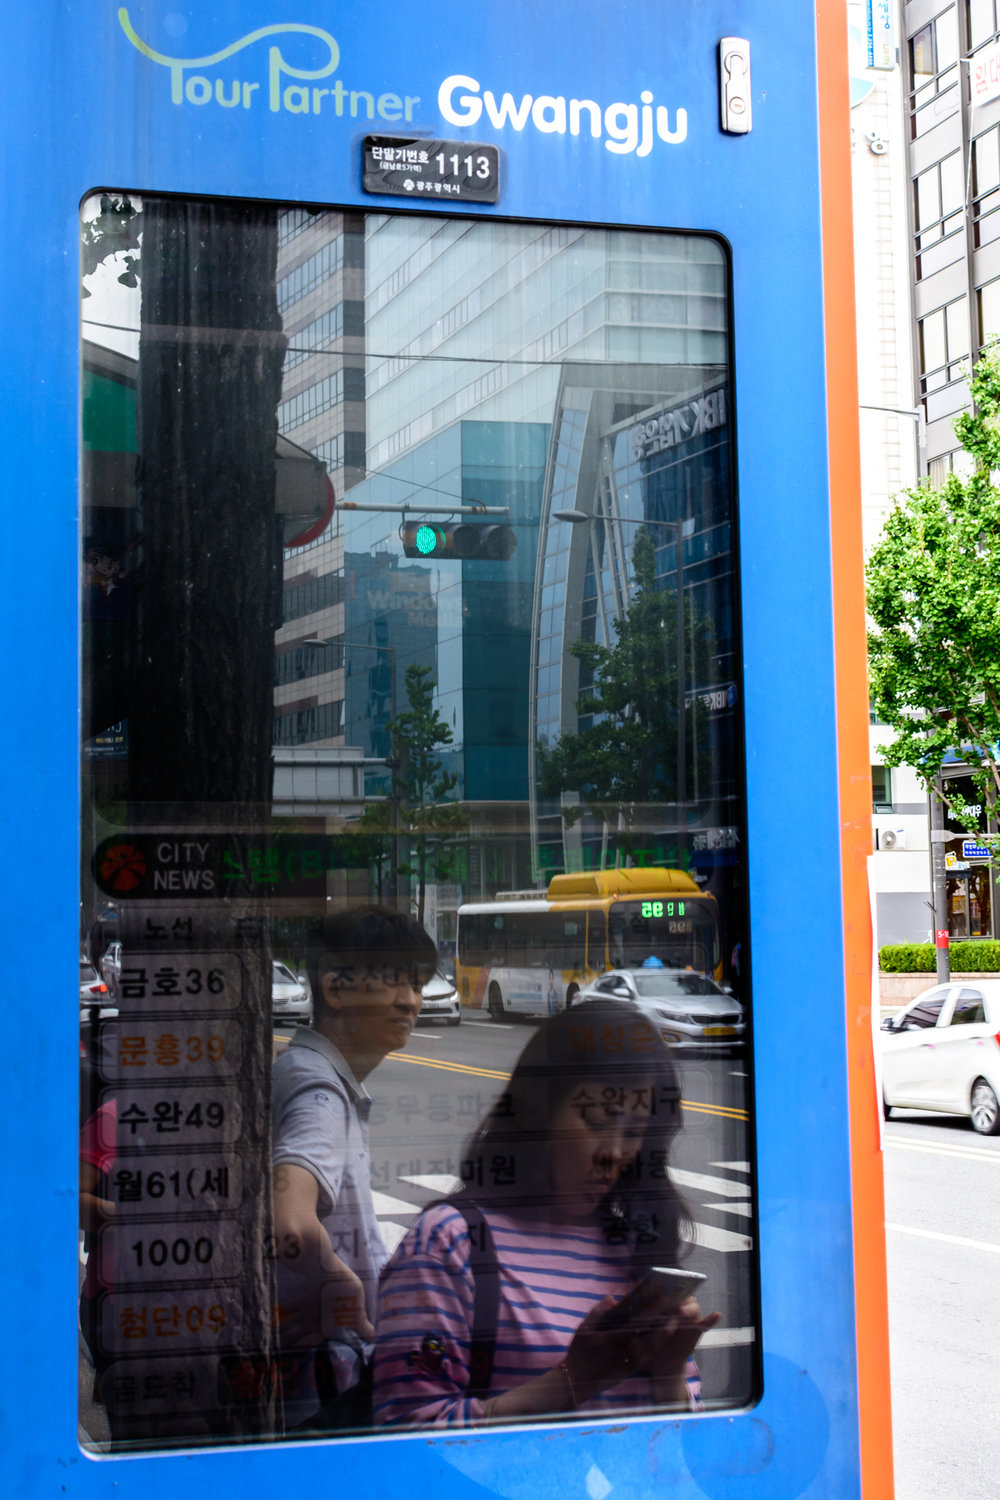 A man and woman wait for a bus in downtown Gwangju.